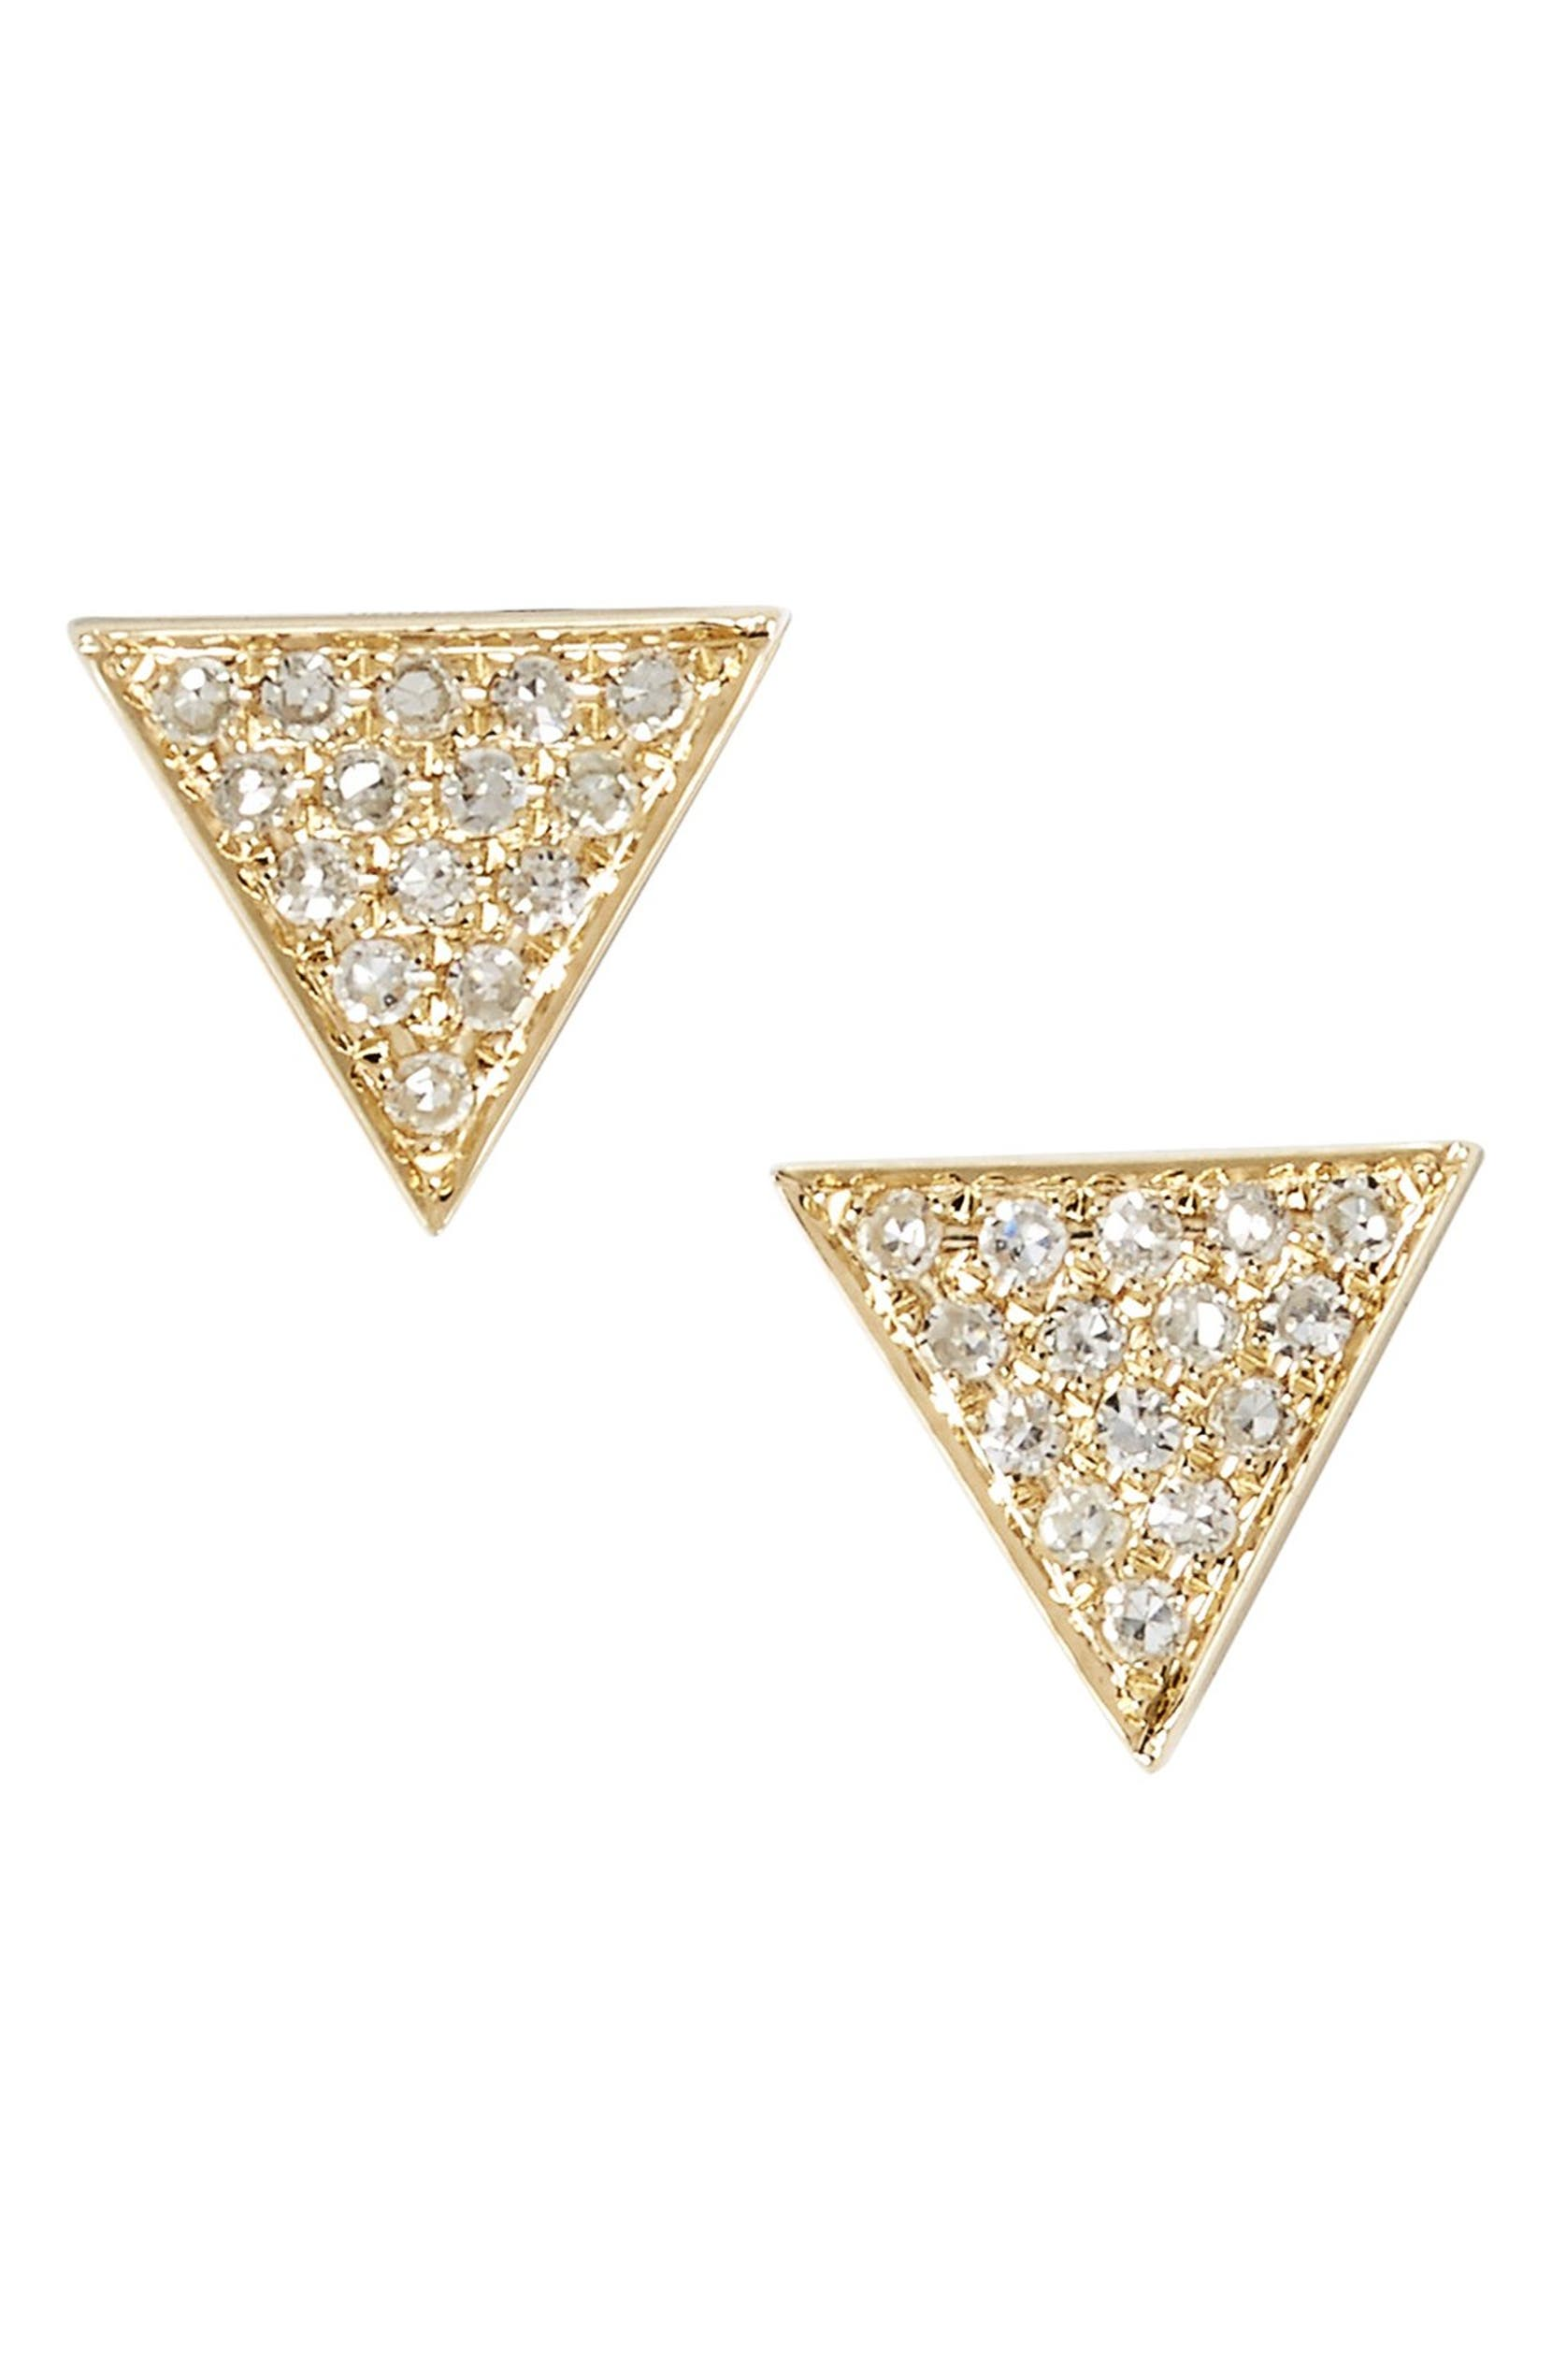 Dana Rebecca Designs Emily Sarah Diamond Pavé Triangle Stud Earrings Nordstrom Exclusive